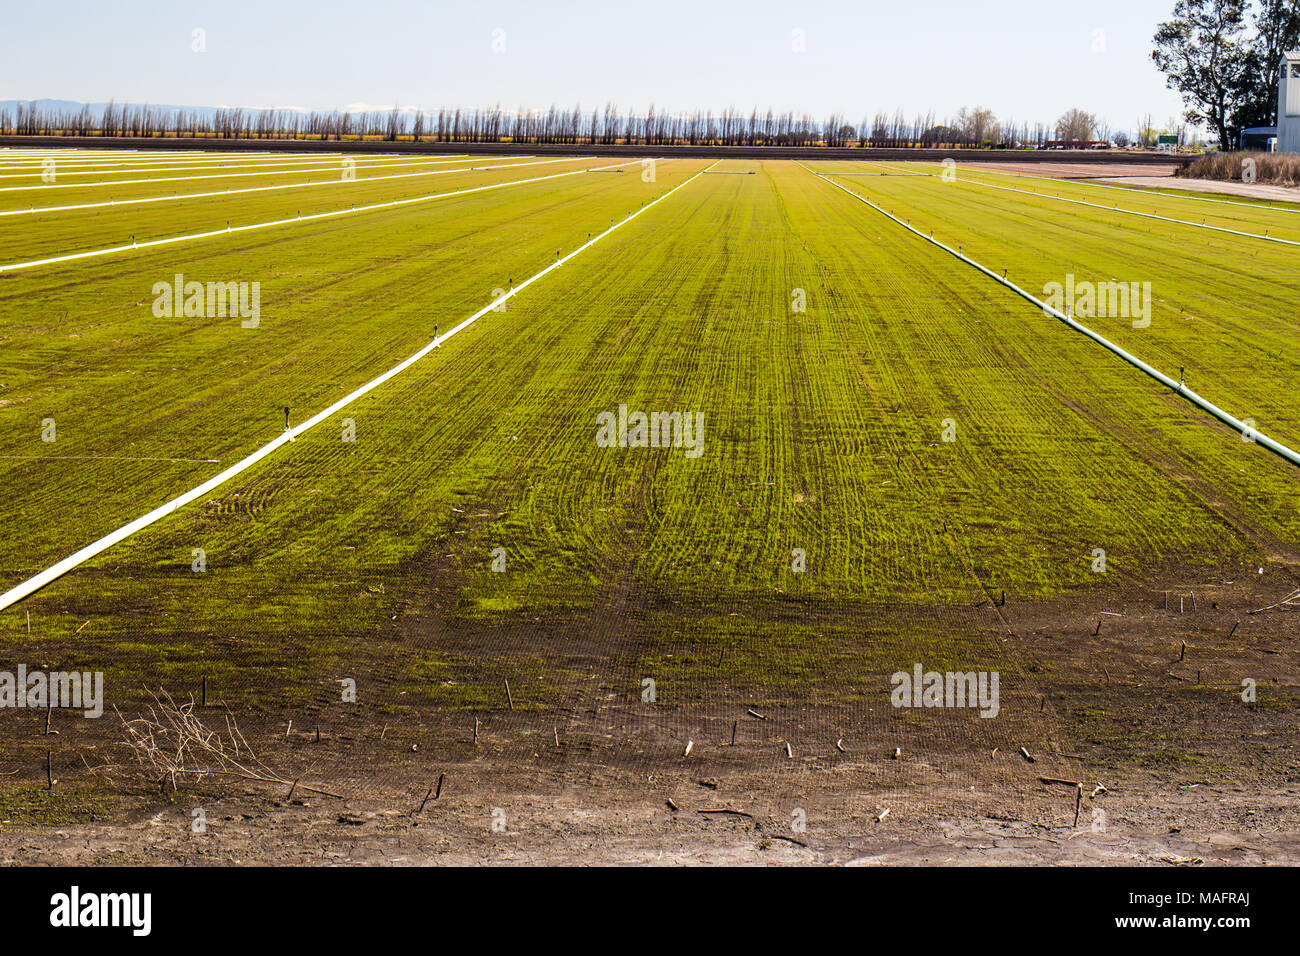 Irrigation Sprinklers & Pipes On Recently Planted Field - Stock Image